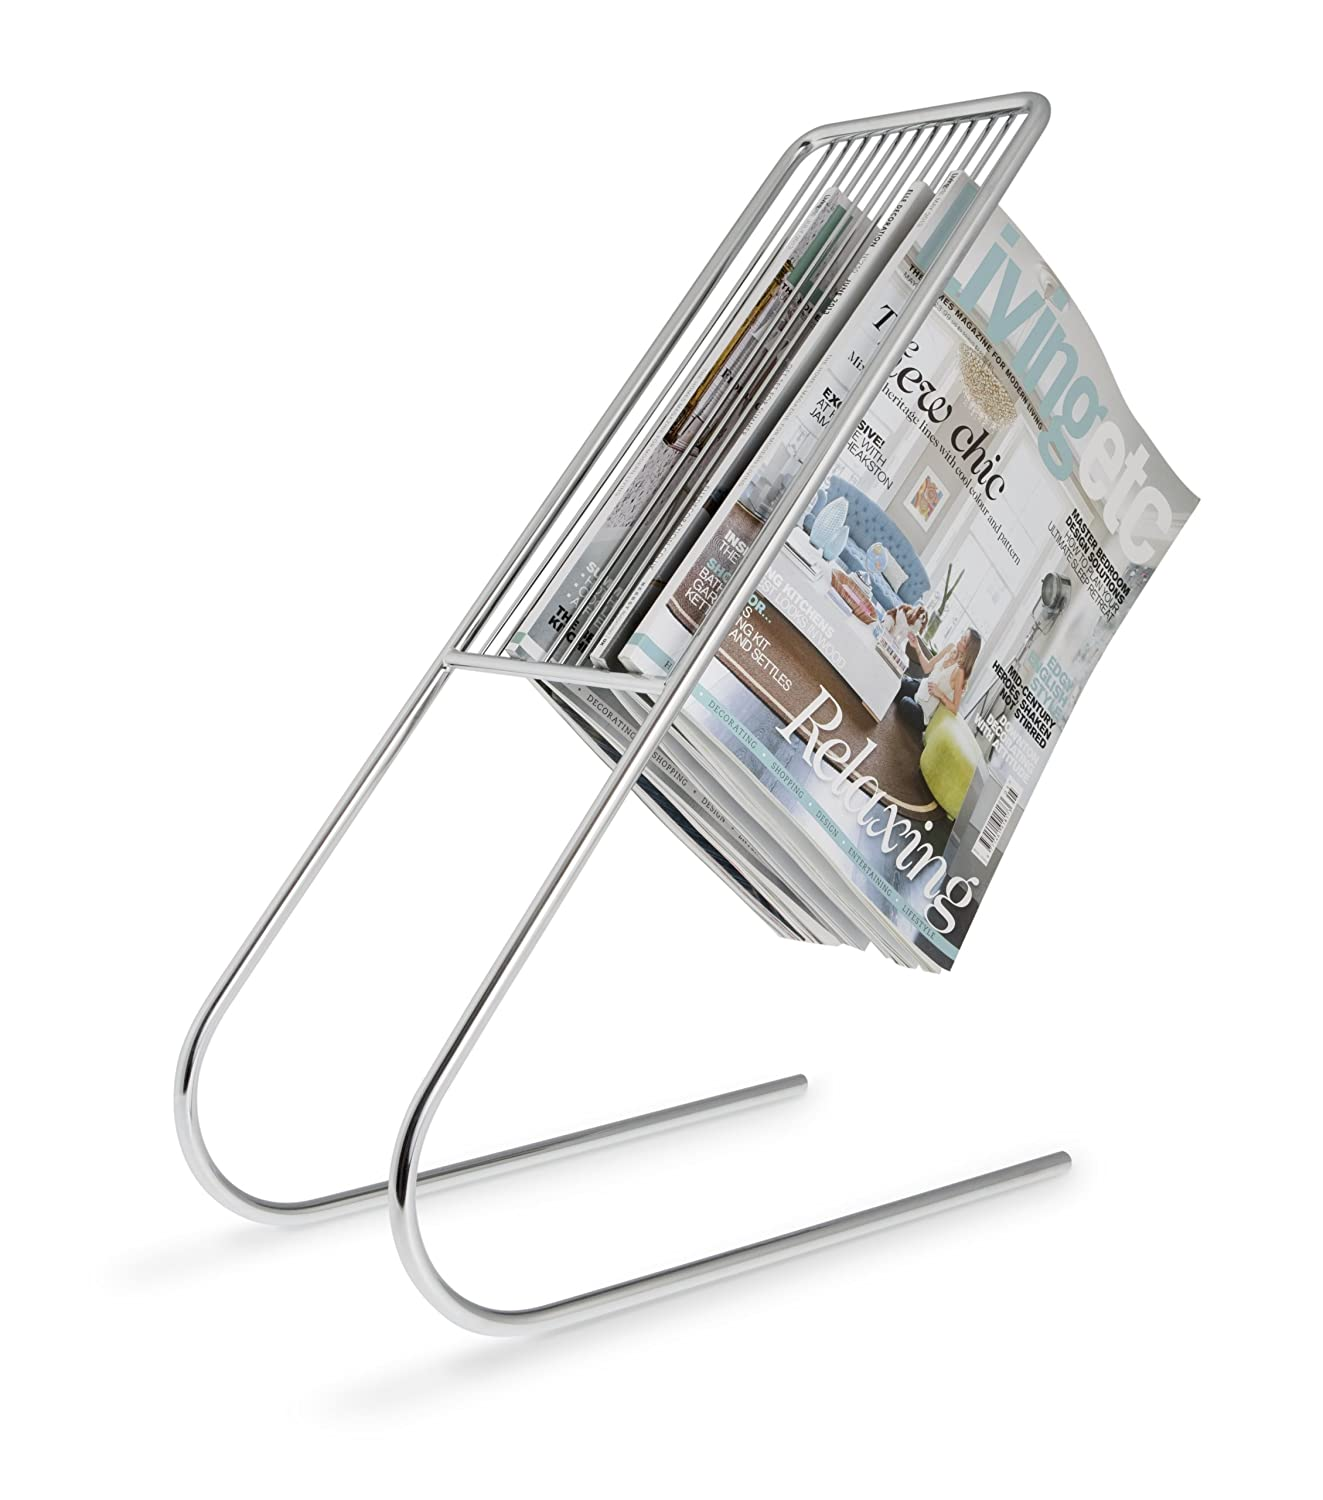 Floating Magazine Holder - Chrome j-me original design JMFLOATCH